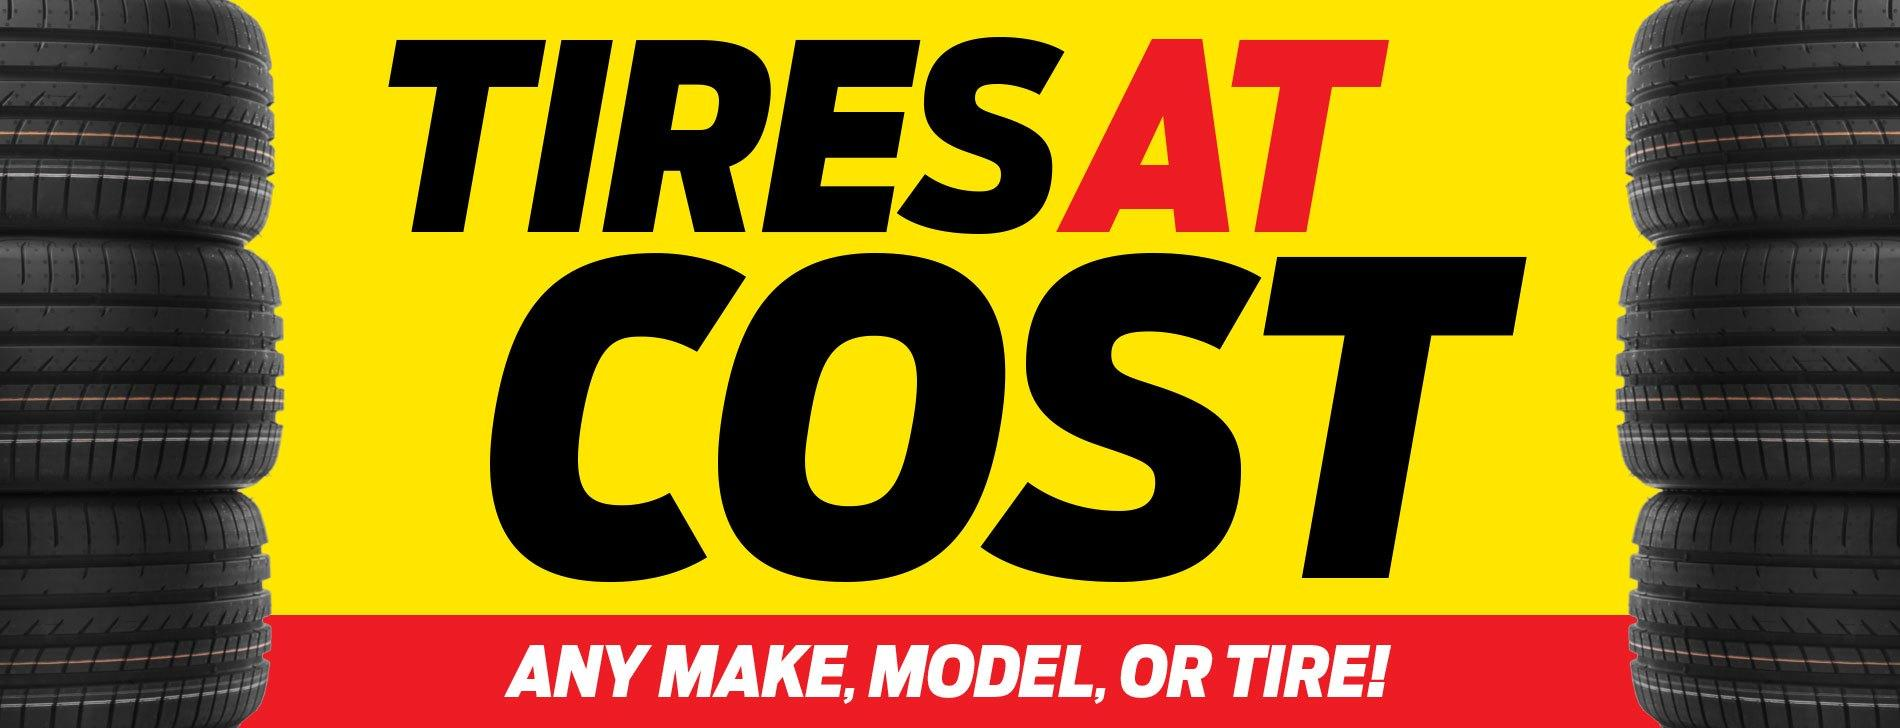 Tires at Cost!